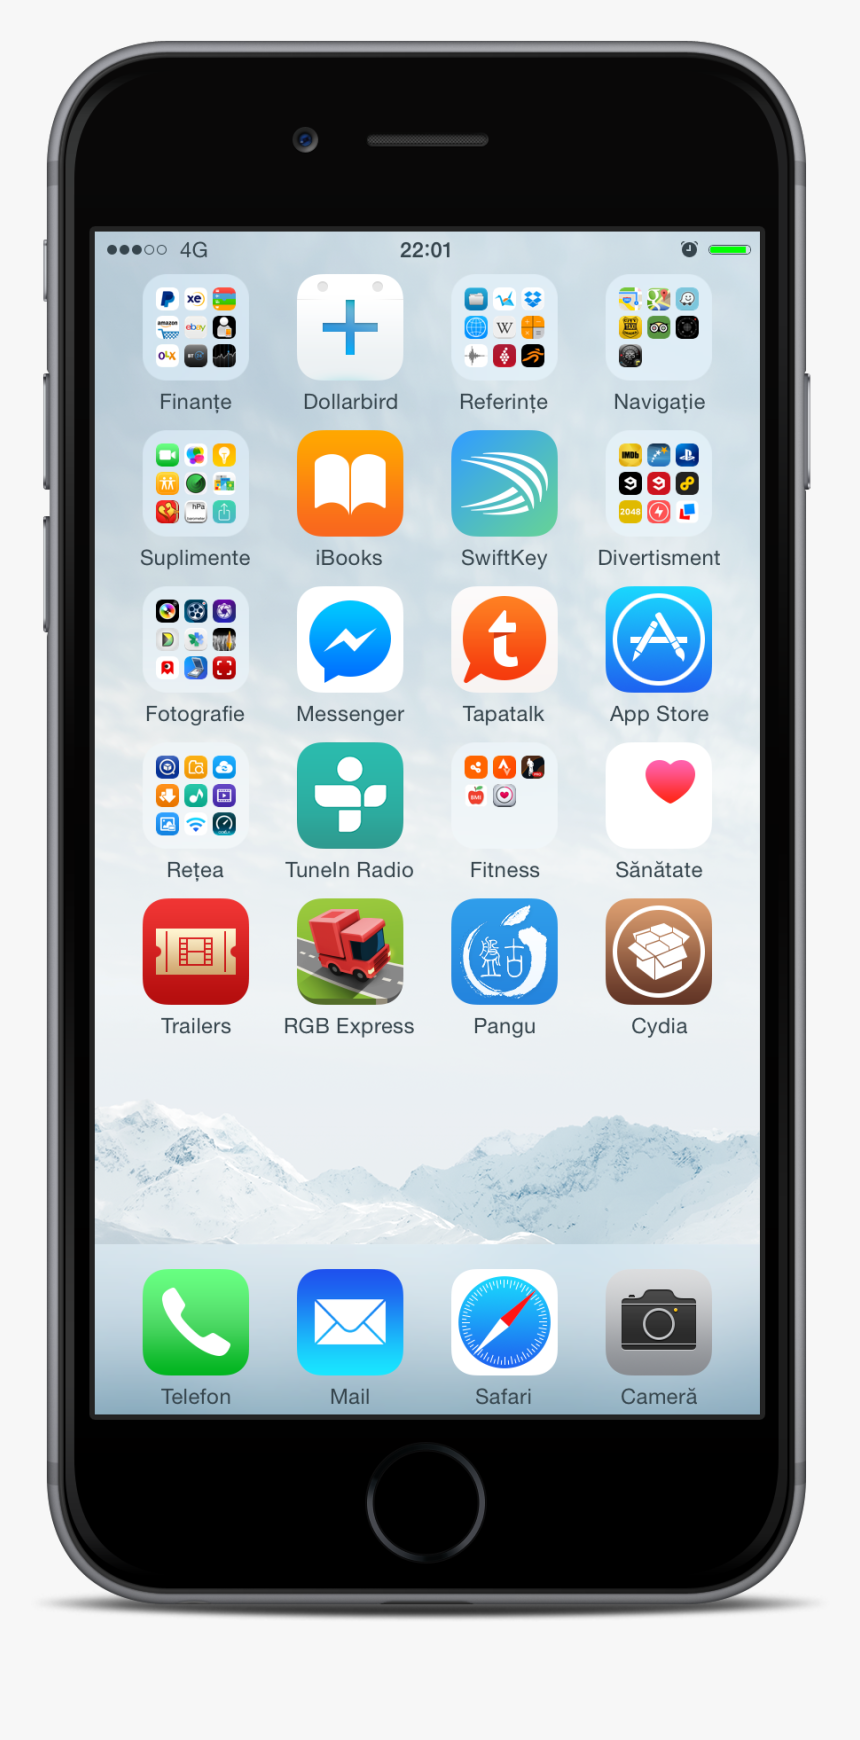 Image Result For Iphone 8 Product Transparent Background - Iphone 8 Transparent Background, HD Png Download, Free Download